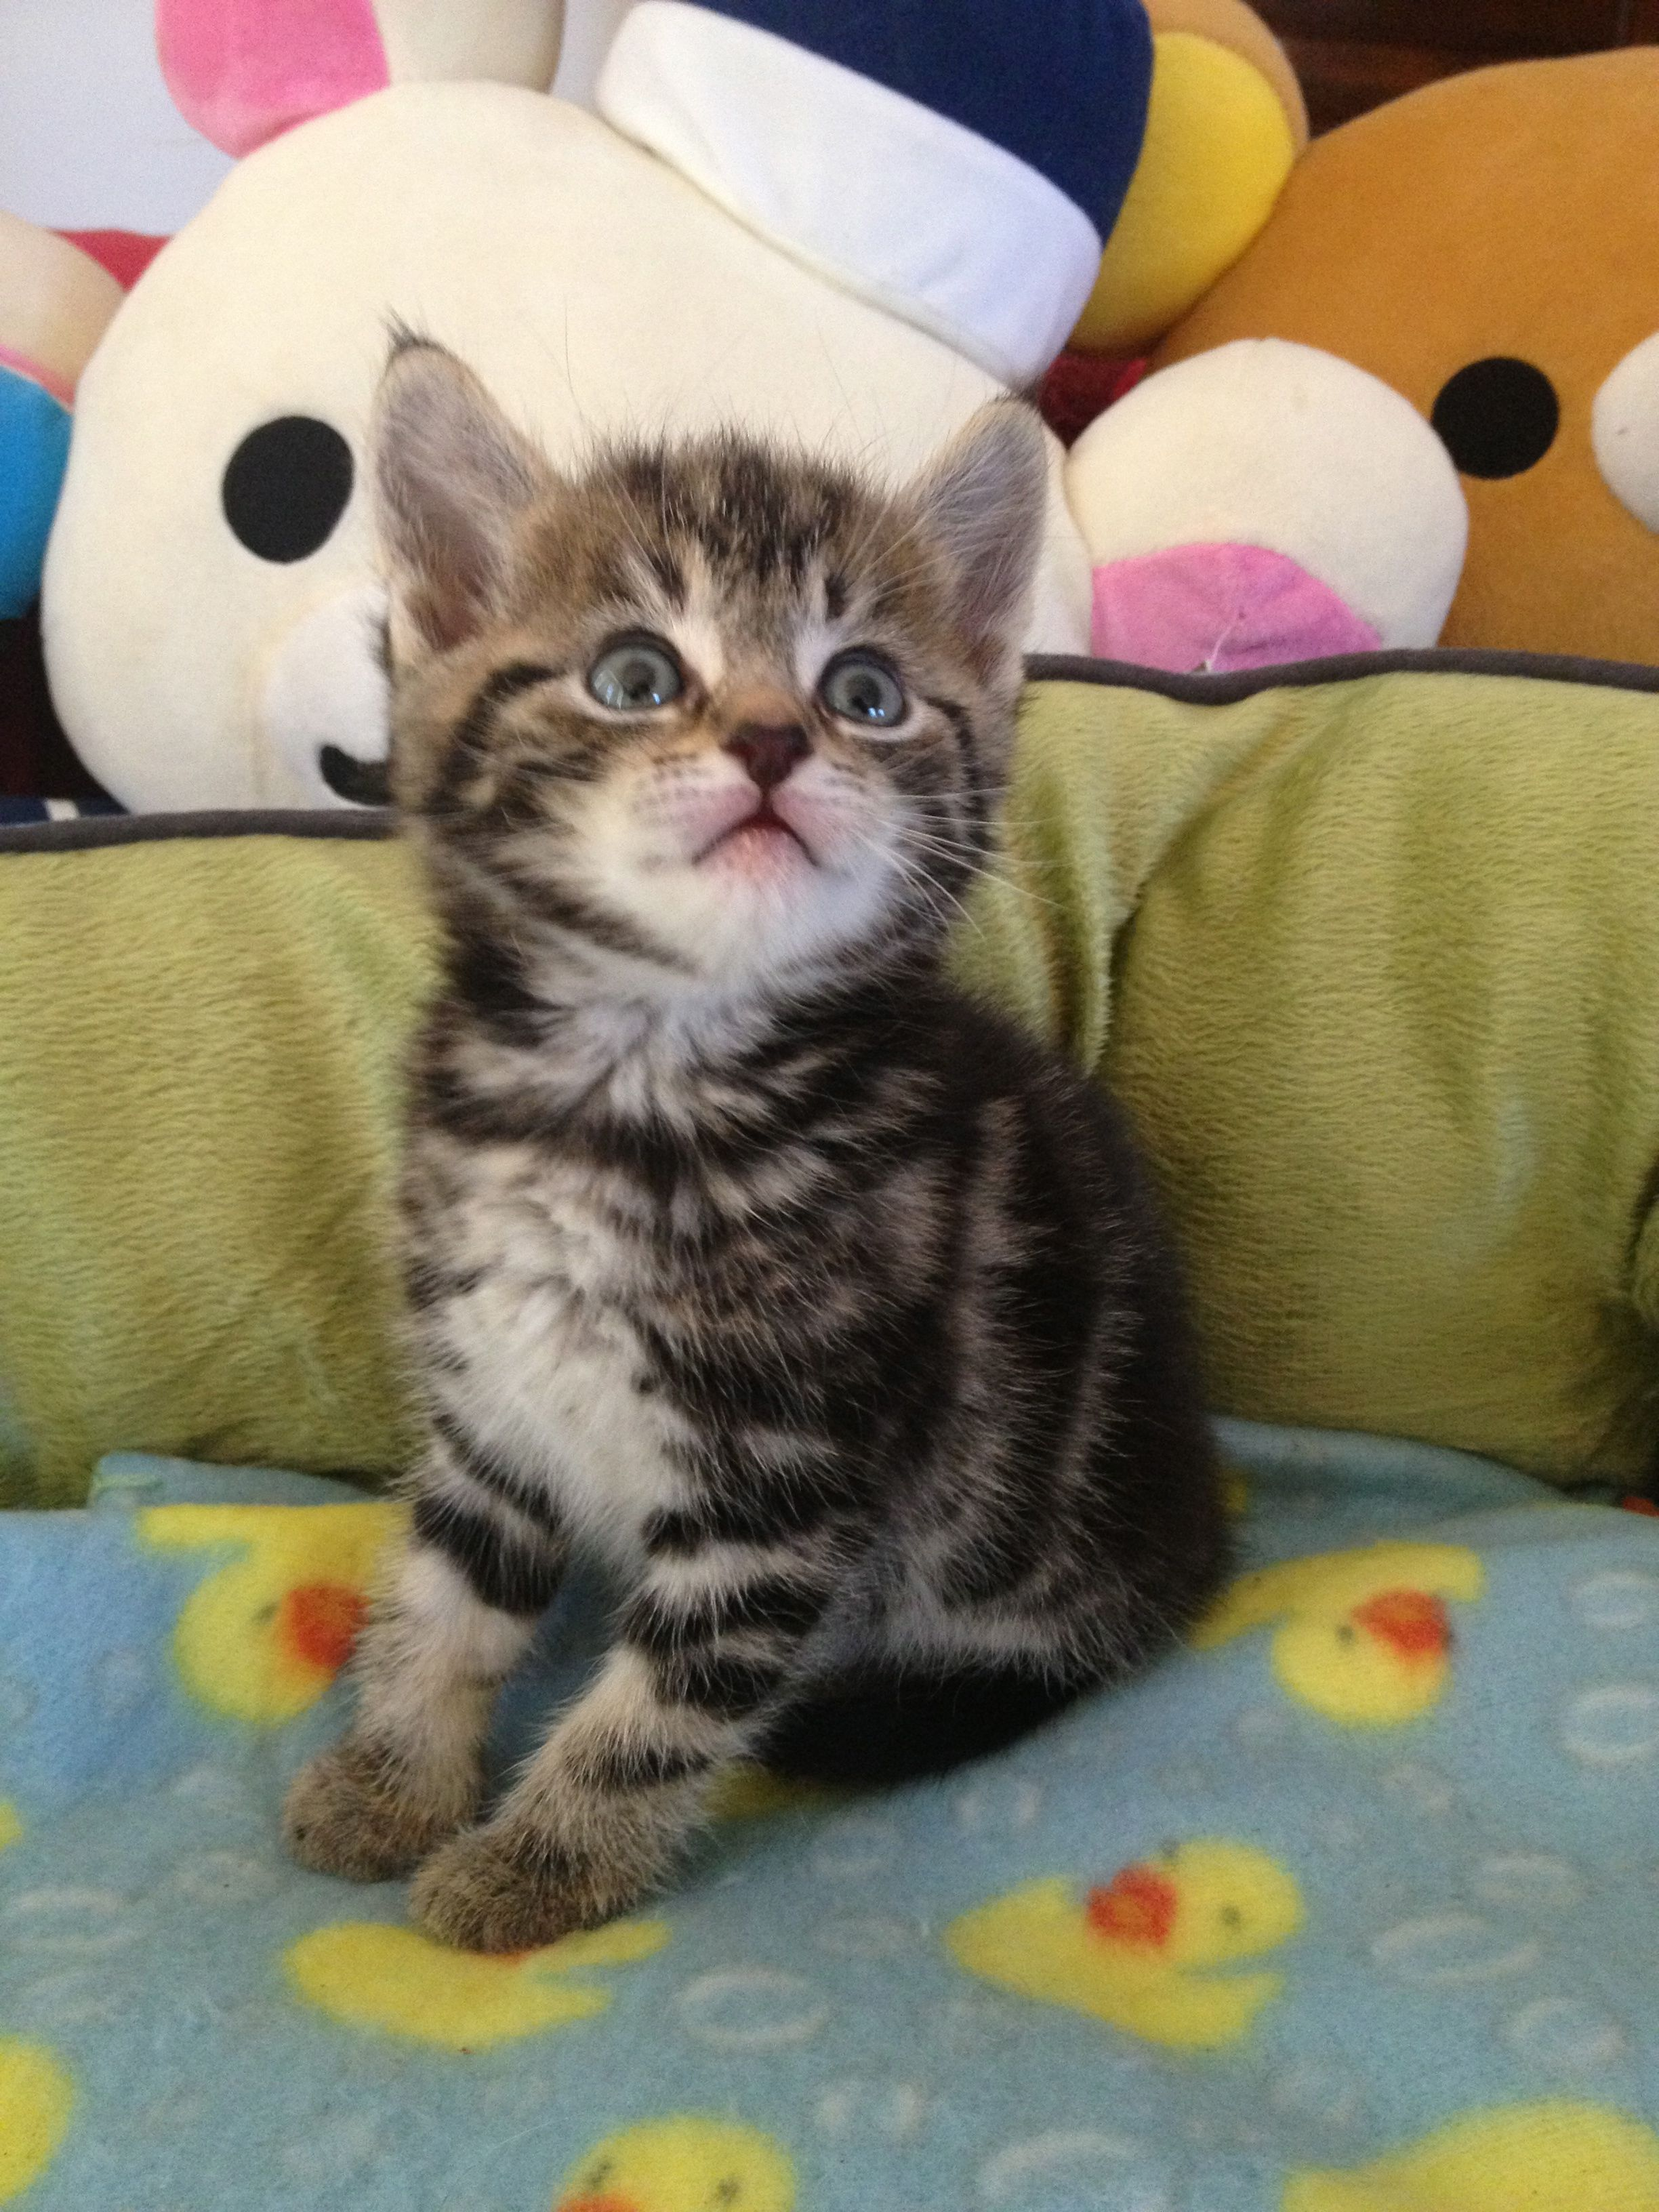 6 Weeks Old Brown Tabby Kitten Look At His Cute Face Funny Cute Cats Cute Kitten Pics Kittens Cutest